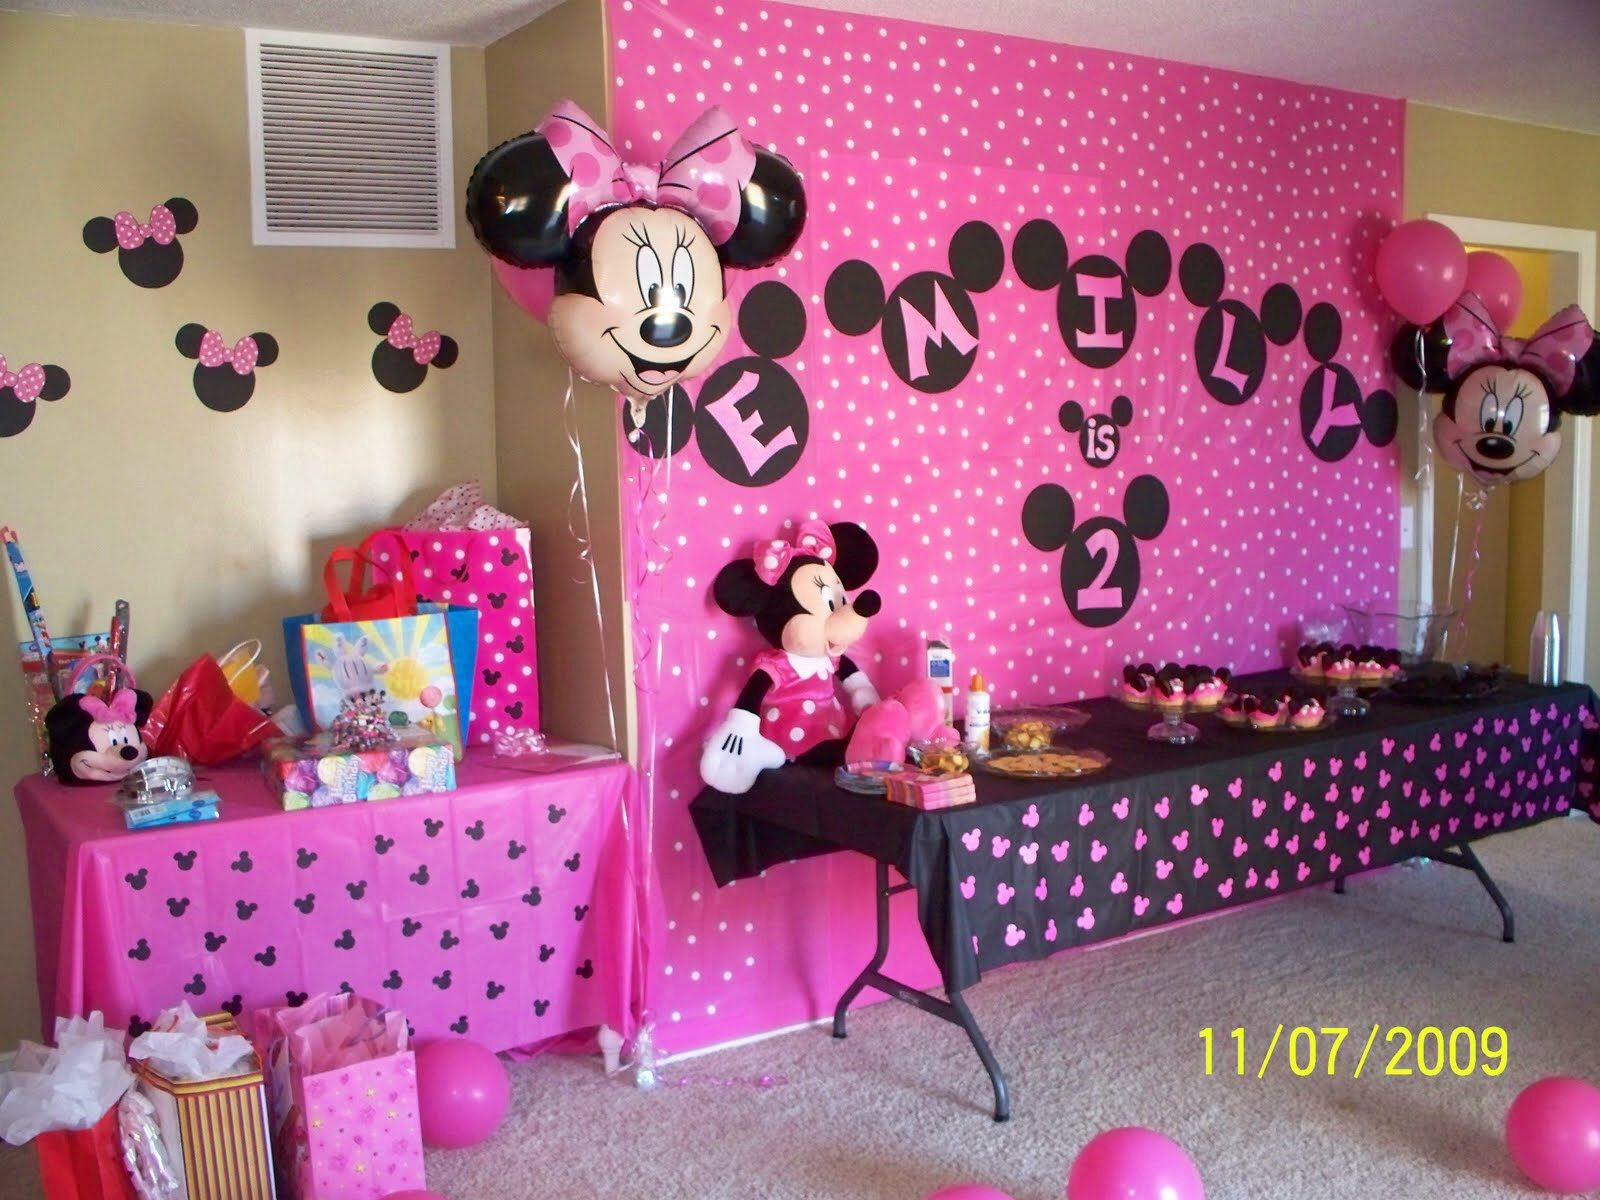 Pin By Lakeisha Imani On 1st Birthday Ideas Minnie Mouse Style Minnie Mouse Birthday Party Minnie Mouse Birthday Party Decorations Minnie Birthday Party